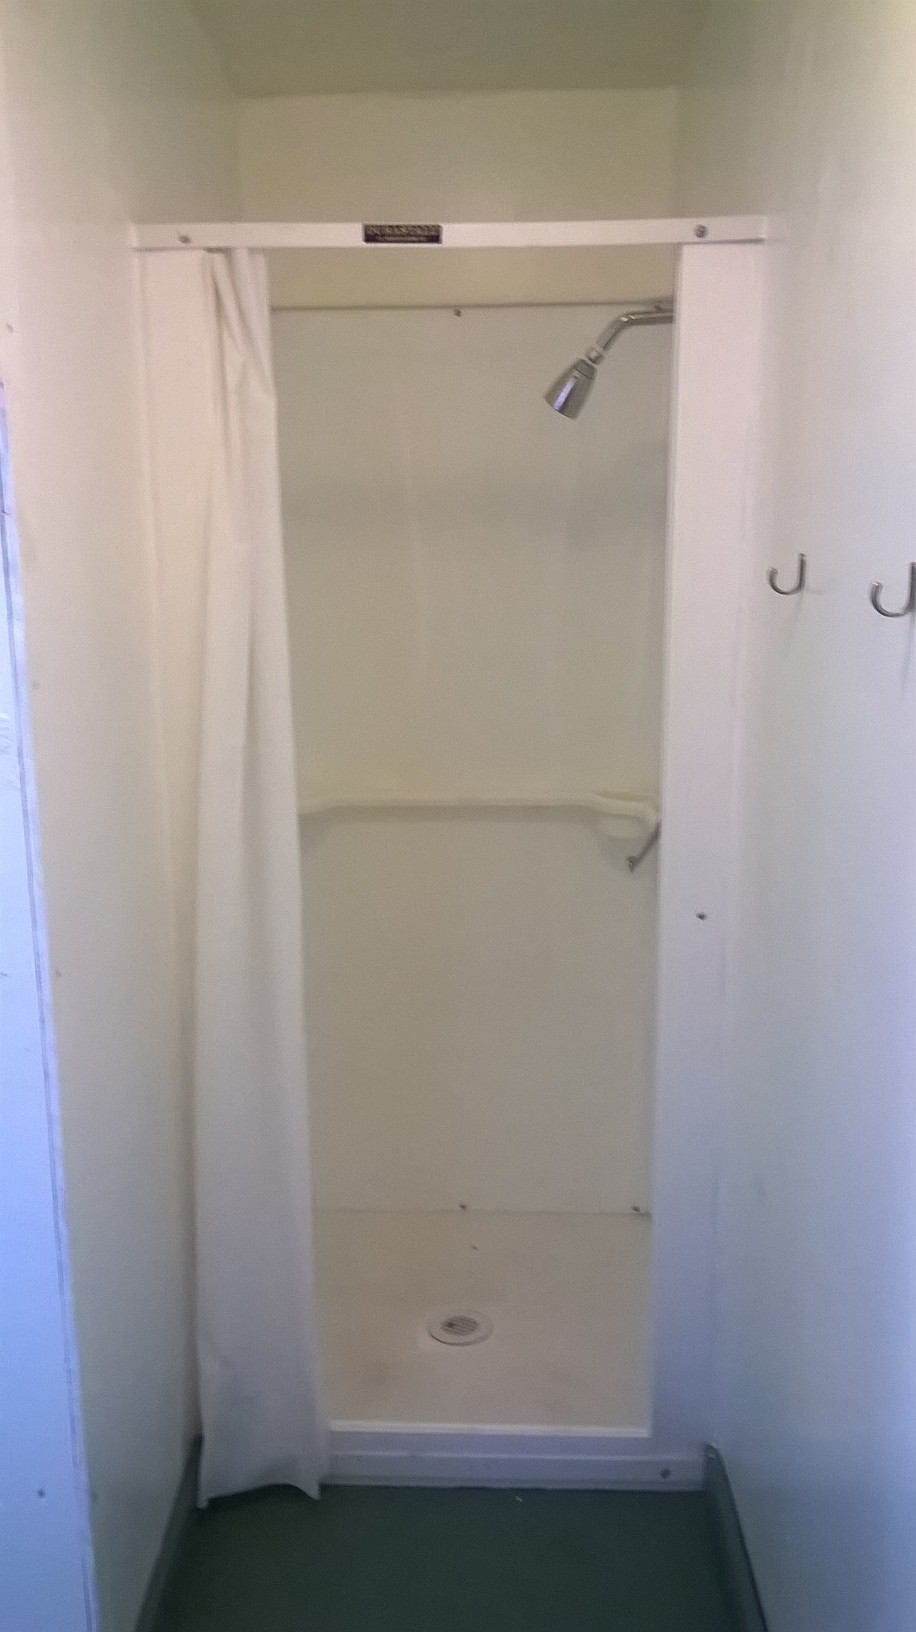 A small bathroom with a shower